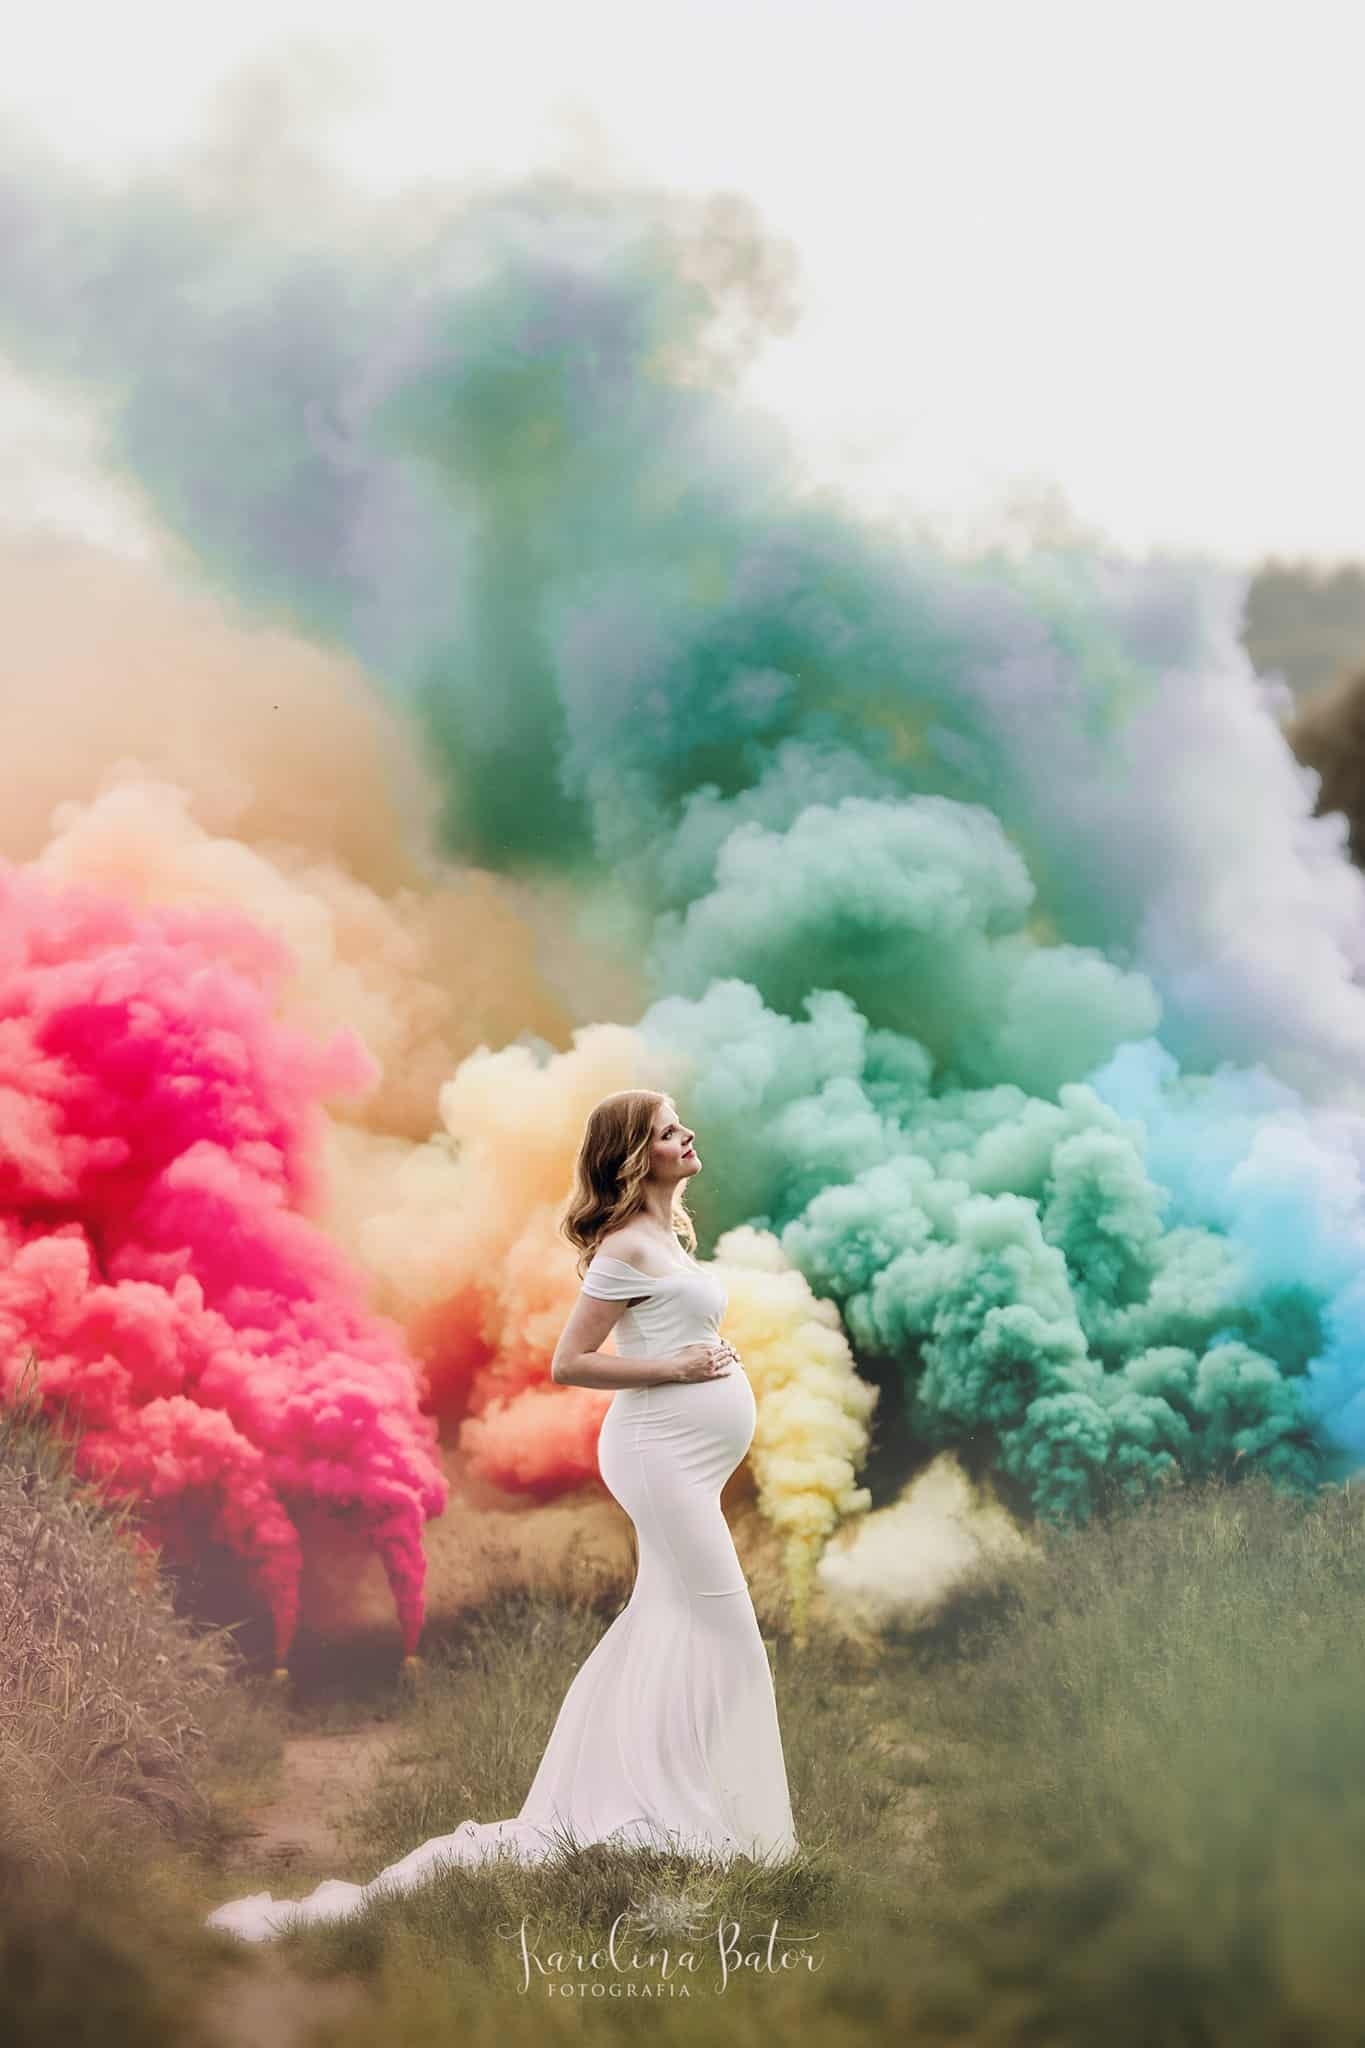 a prägnant woman in a white dress surrounded by colorful smoke bombs